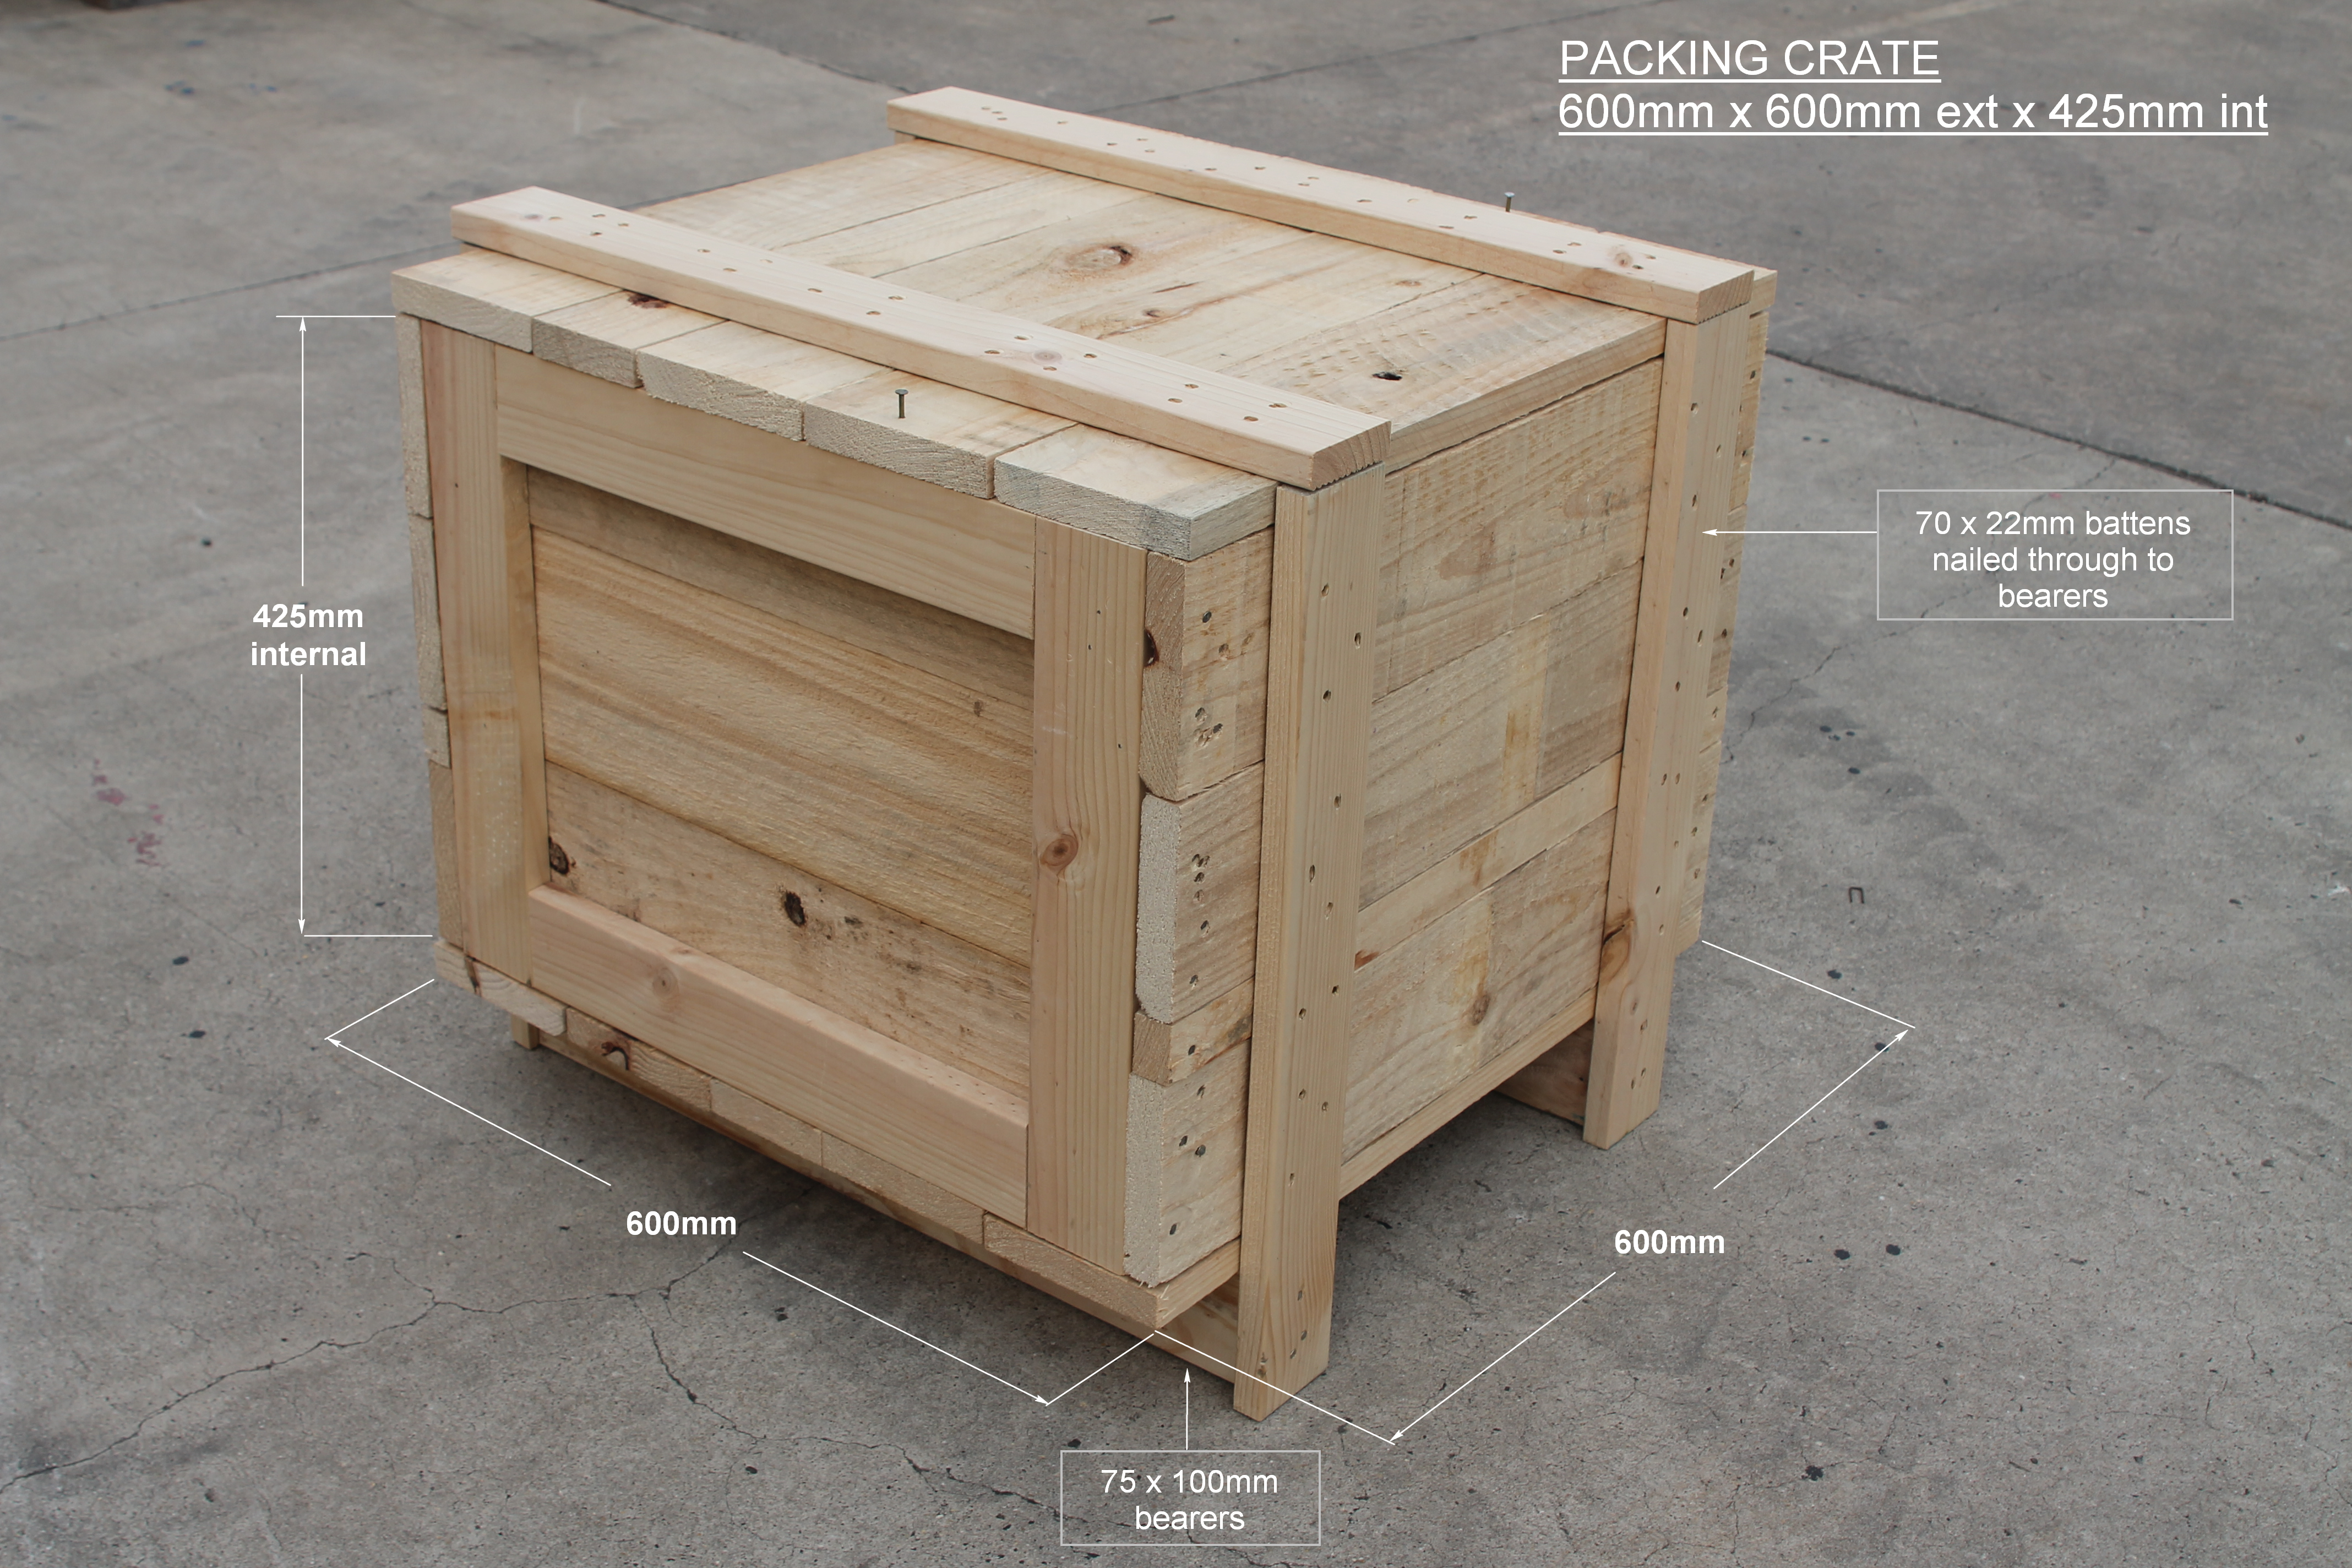 packing crate furniture. Packaging Crate Packing Furniture